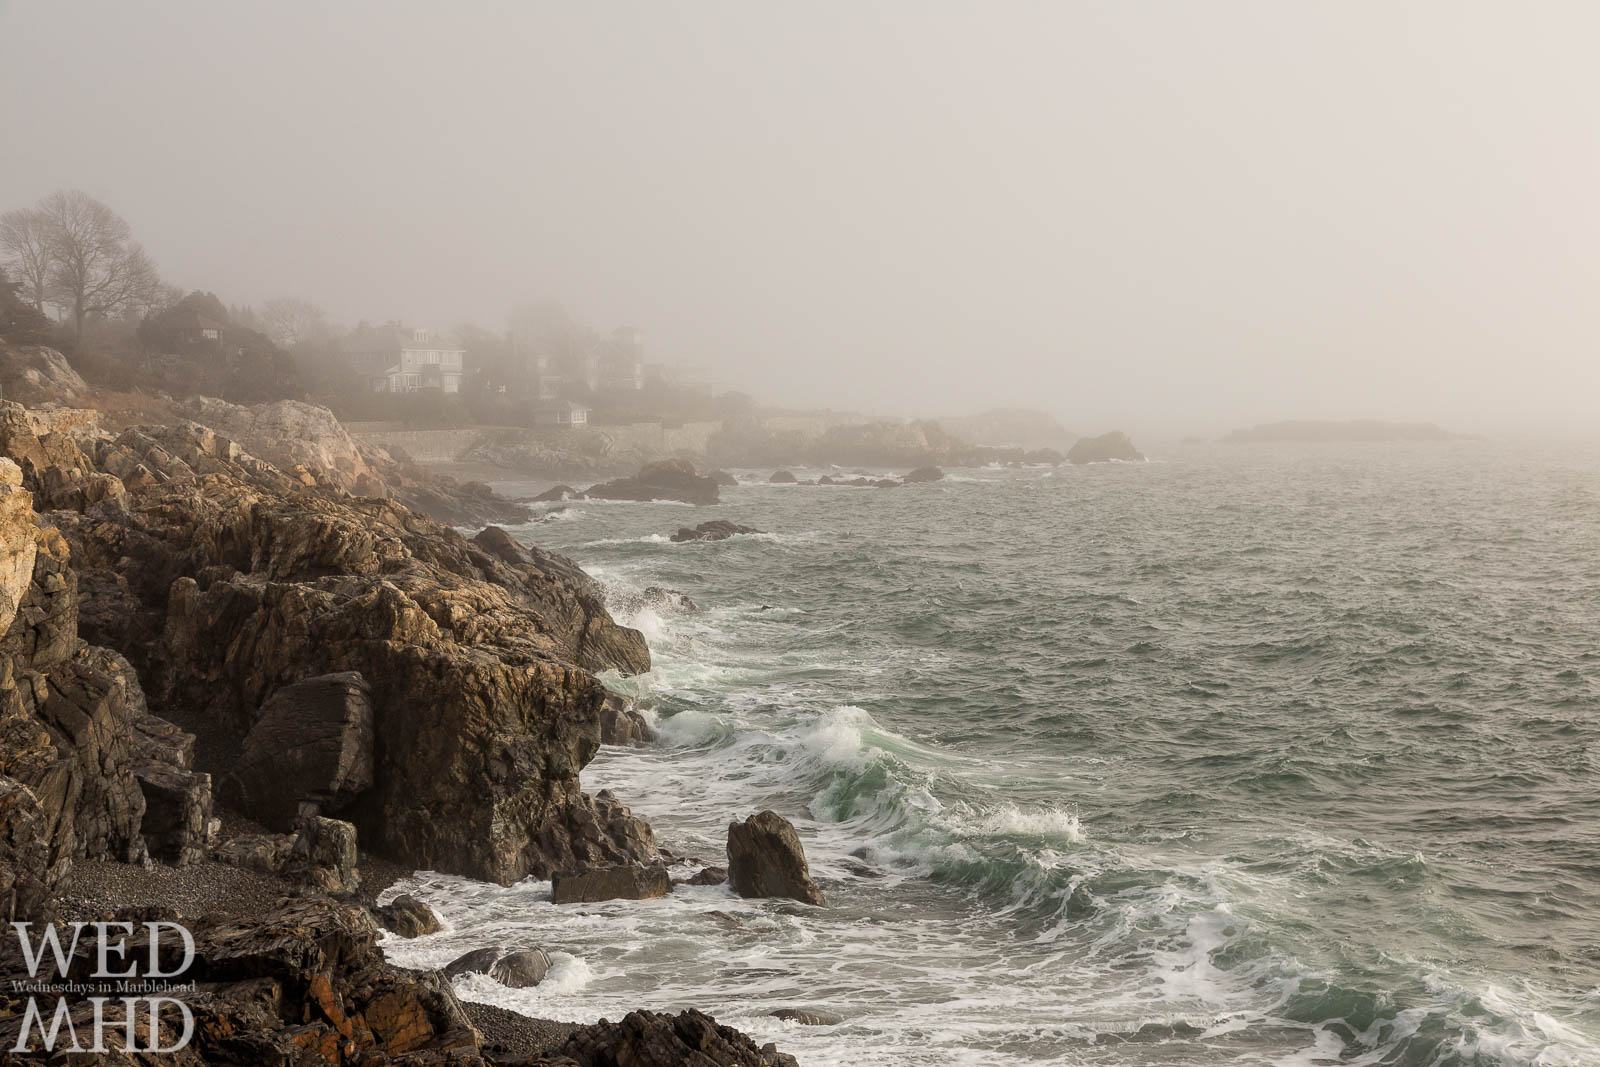 Waves seem to beckon as they appear out of the fog on this late February morning at Castle Rock